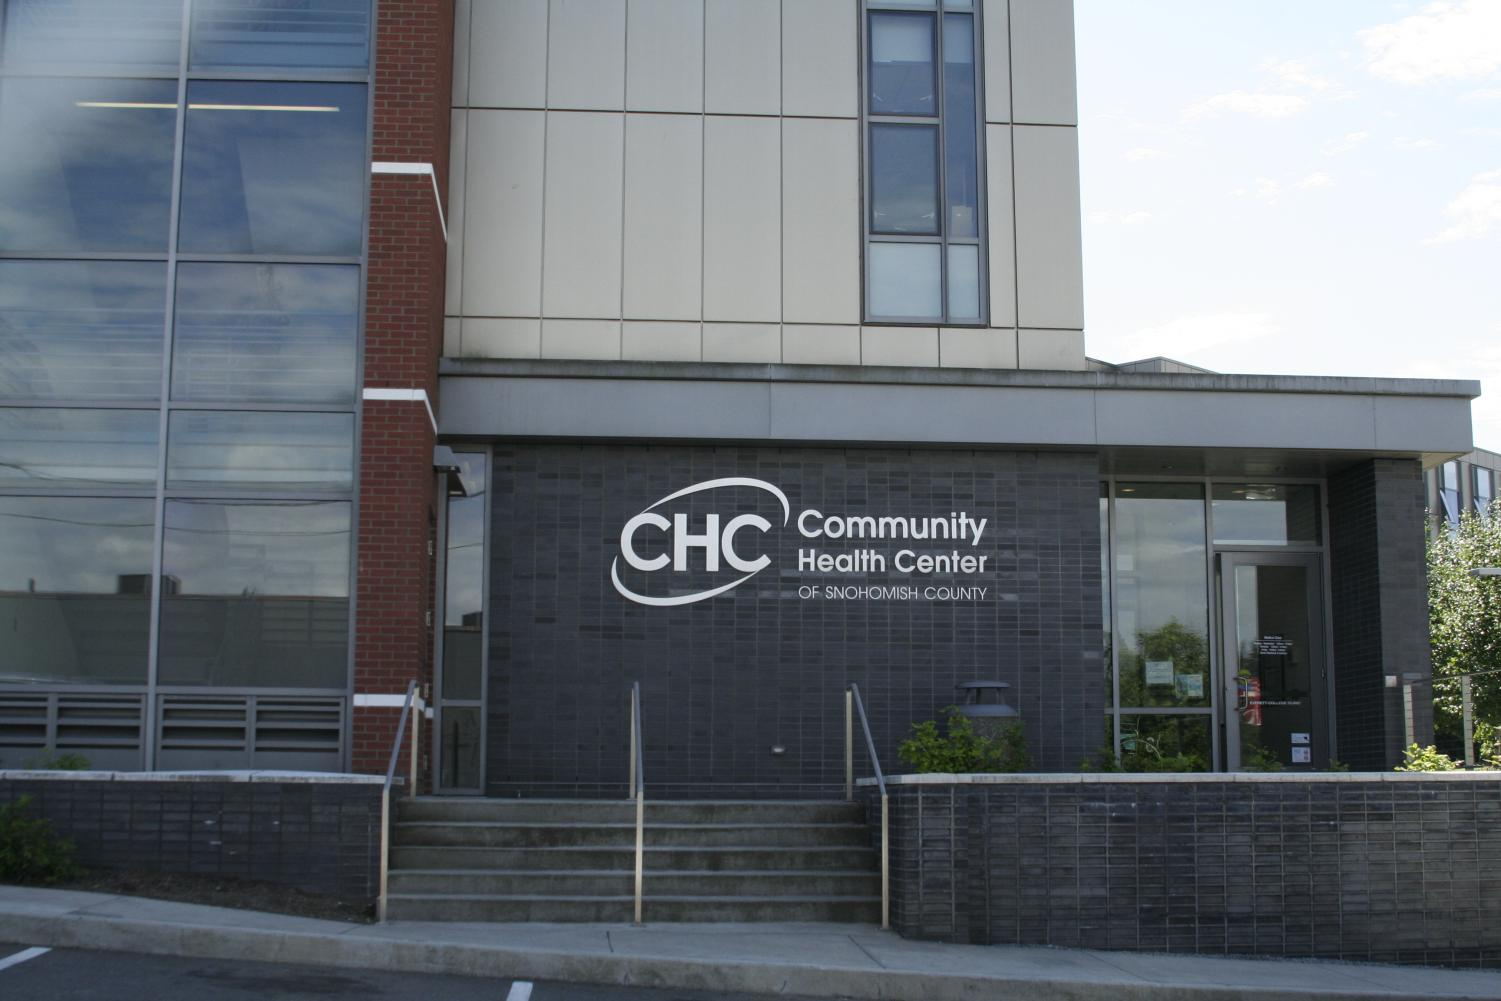 The Snohomish County Community Health Center at the college campus location offers mental health services for students and community members.